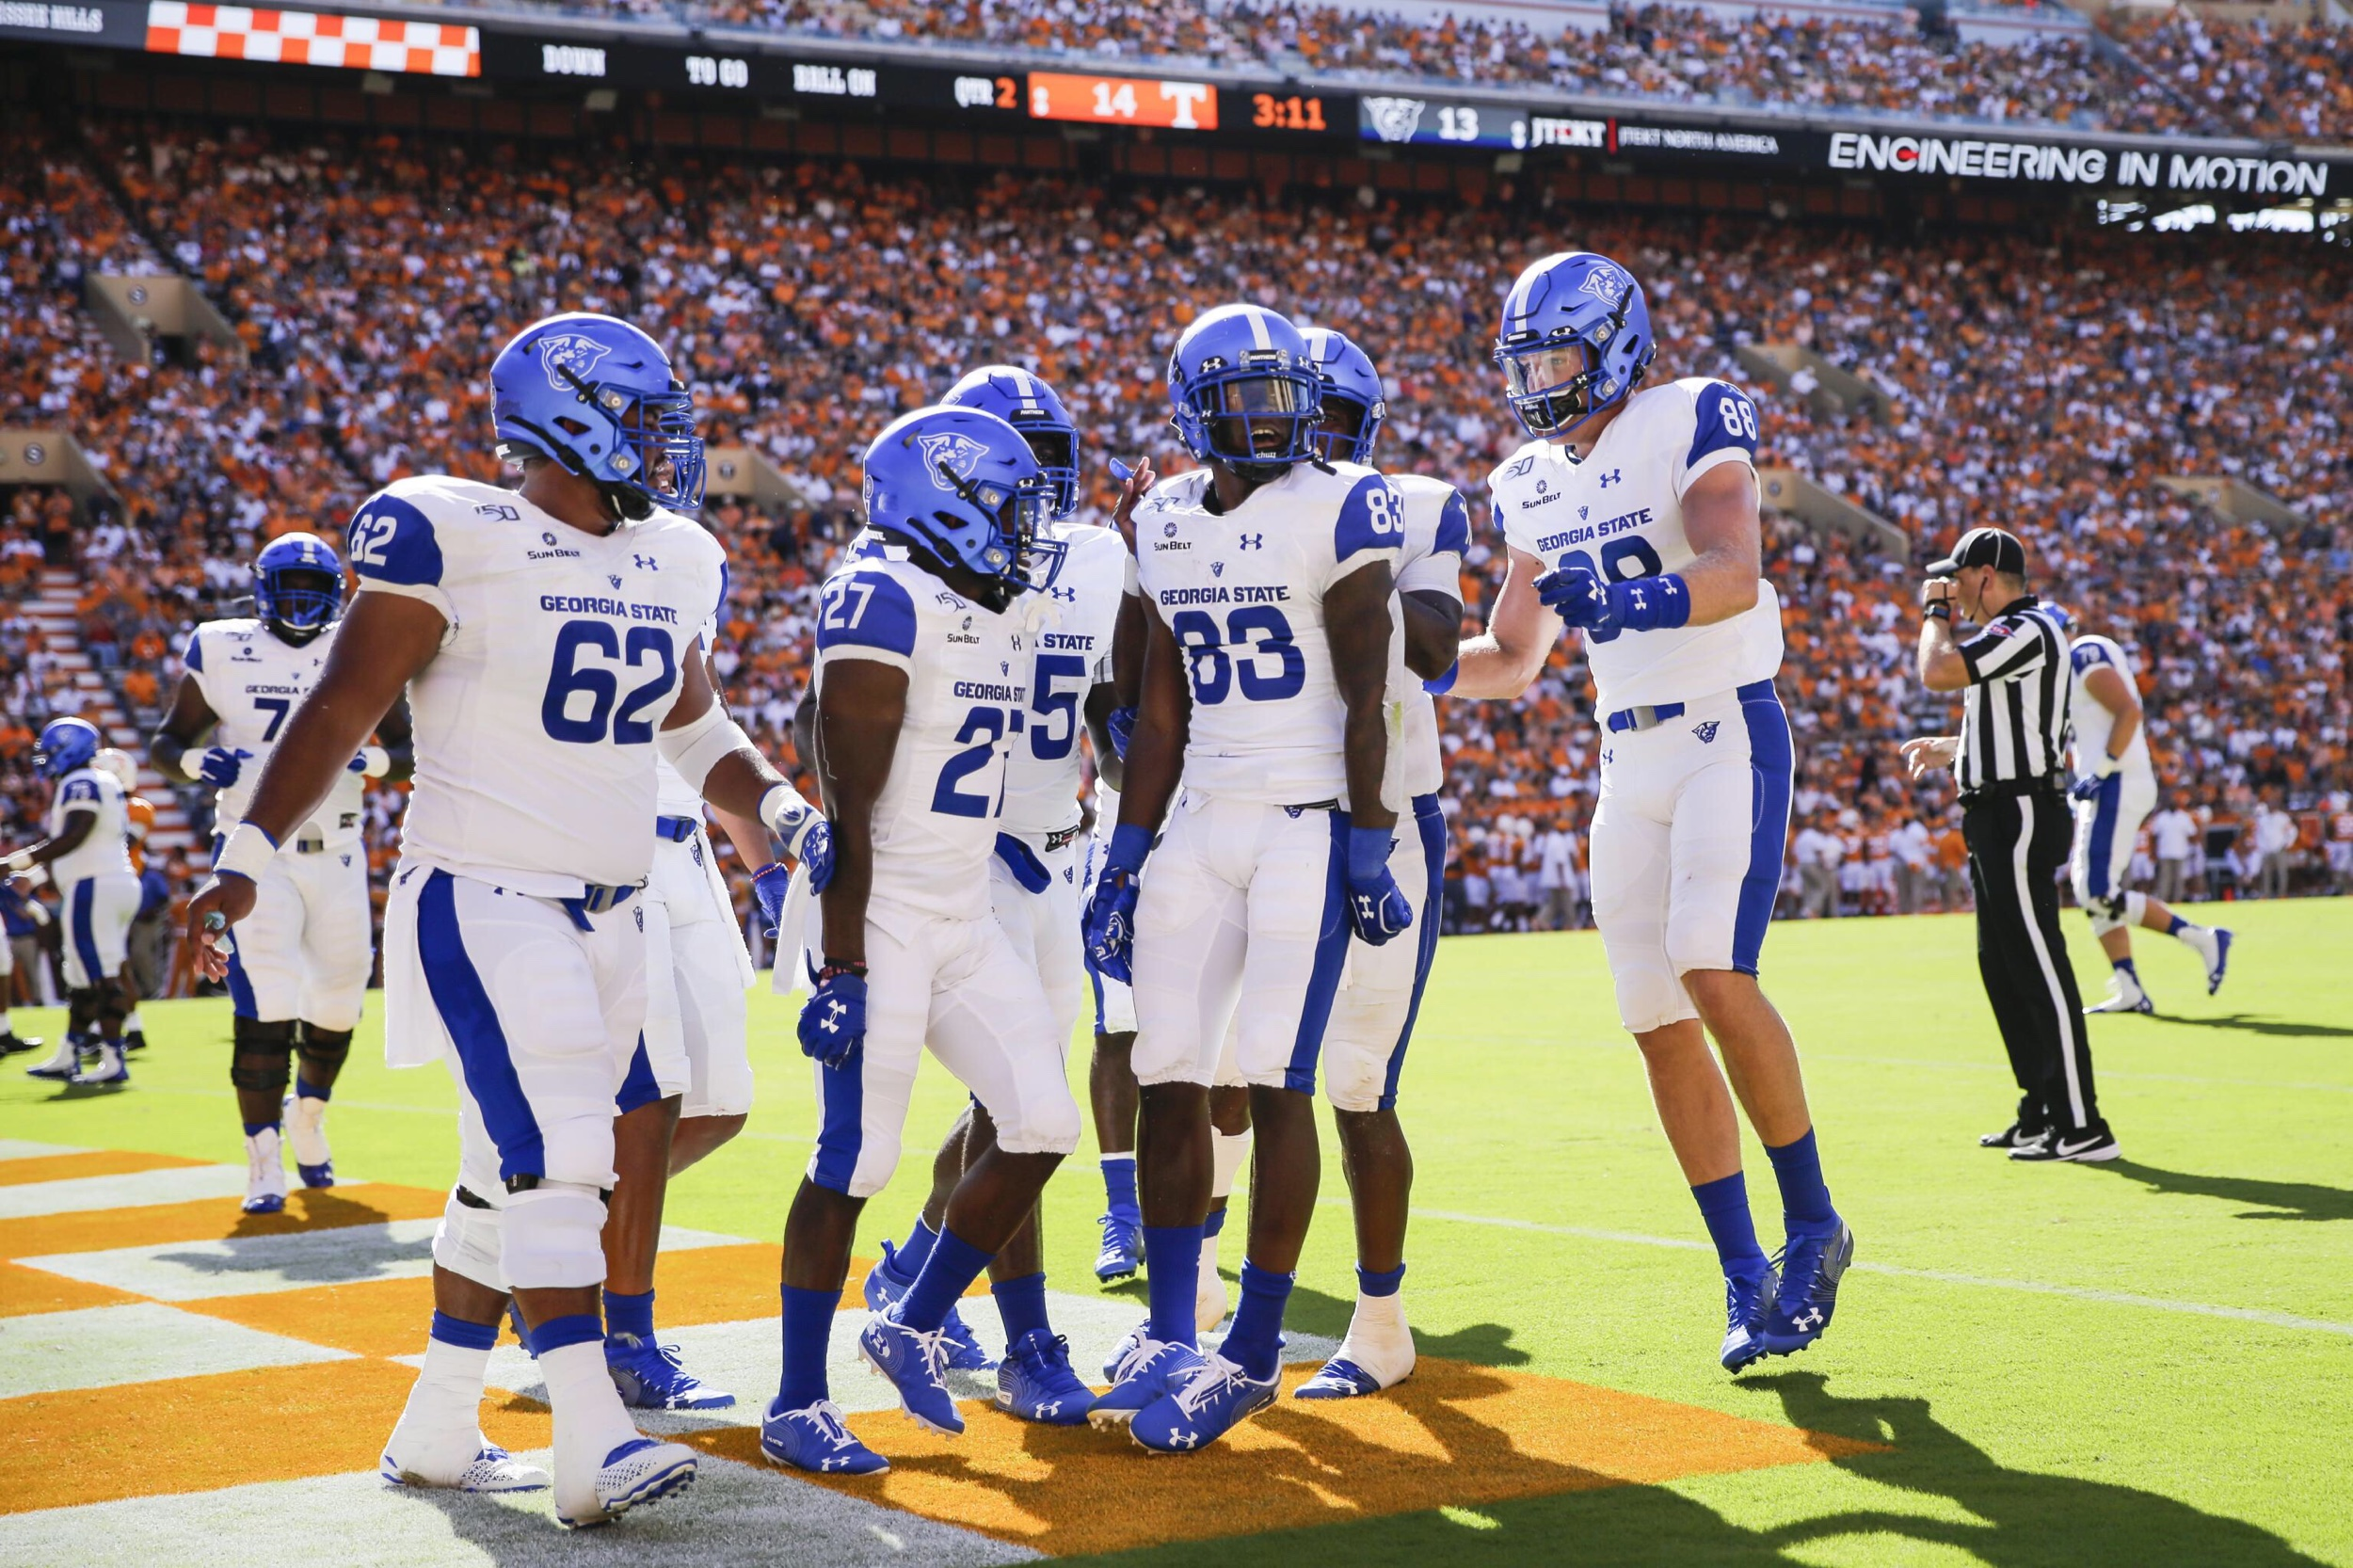 Georgia State proved they can defeat an SEC team, which puts them in an elite group.